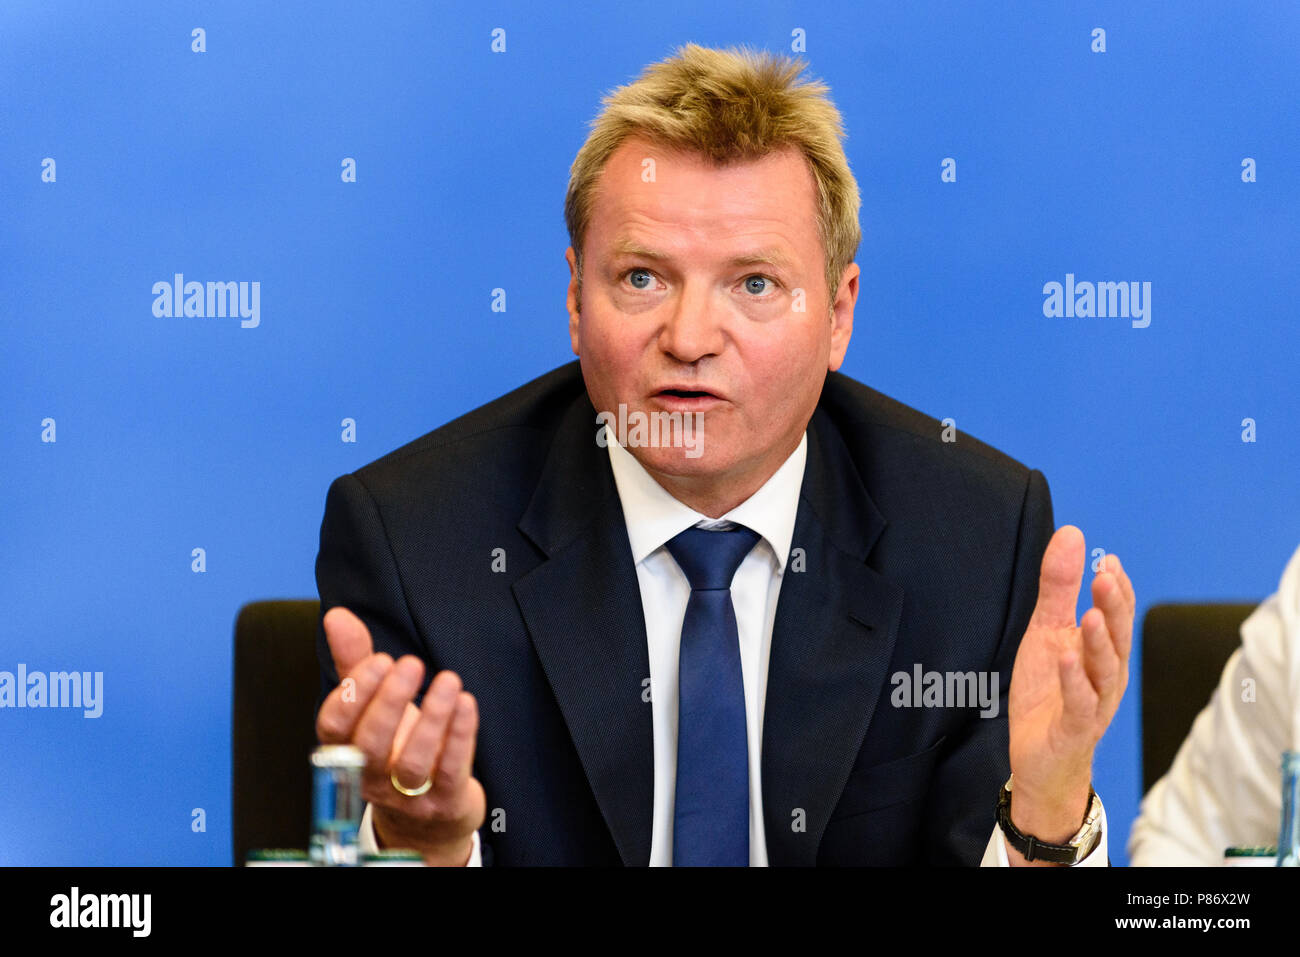 Berlin, Germany. 10th July, 2018. Minister of state at the ministry of Interior, Construction and Homeland Dr. Helmut Teichmann during the presentation of the ''Masterplan Migration - Measures to Organize, Control and Limit Immigration.'' The plan includes stopping and rejecting migrants who are already registered in other EU countries at the German border. Credit: Markus Heine/SOPA Images/ZUMA Wire/Alamy Live News - Stock Image